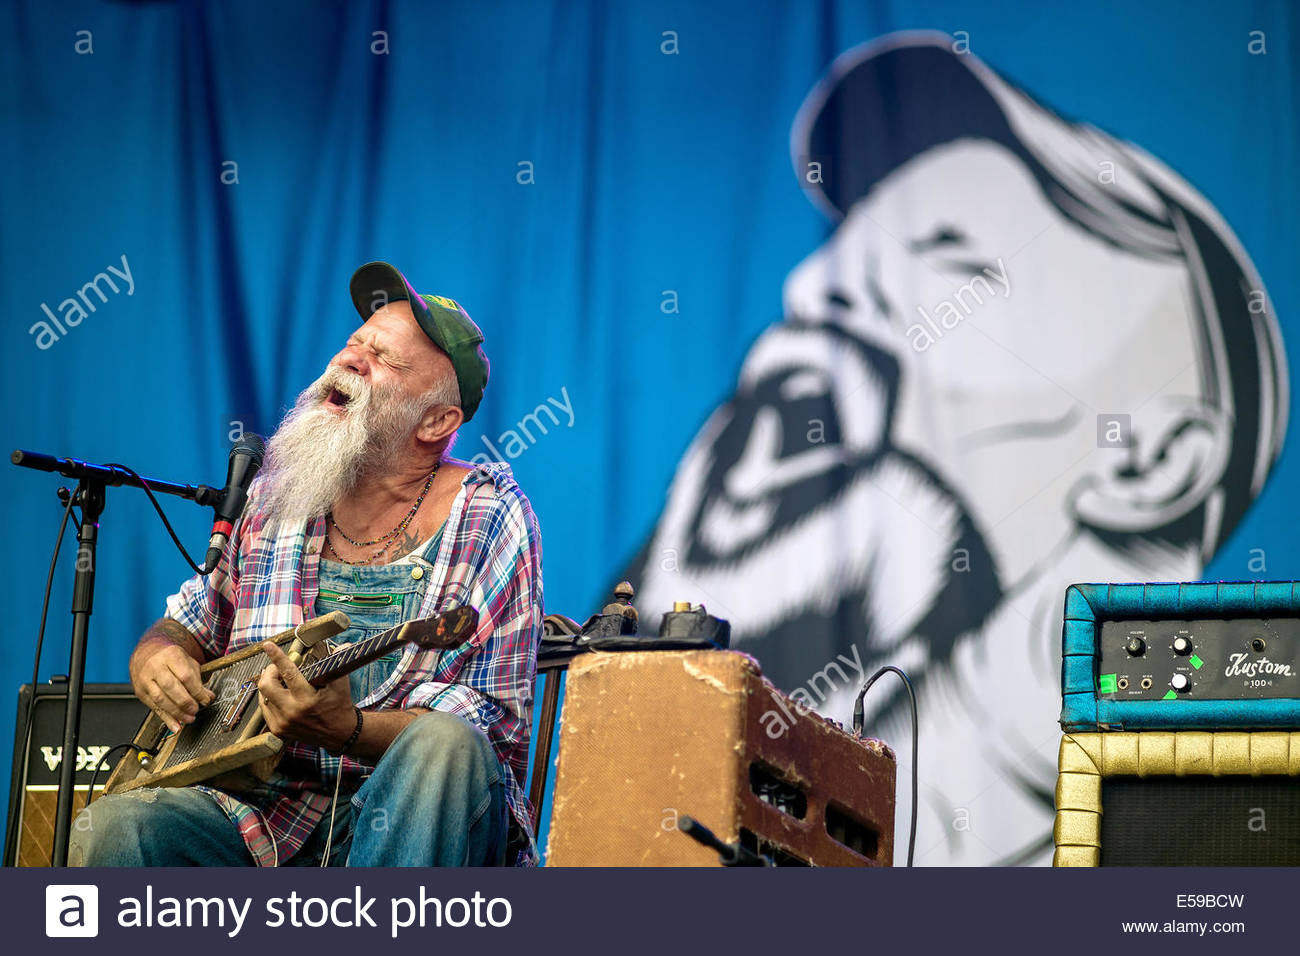 seasick-steve-performing-live-E59BCW.jpg